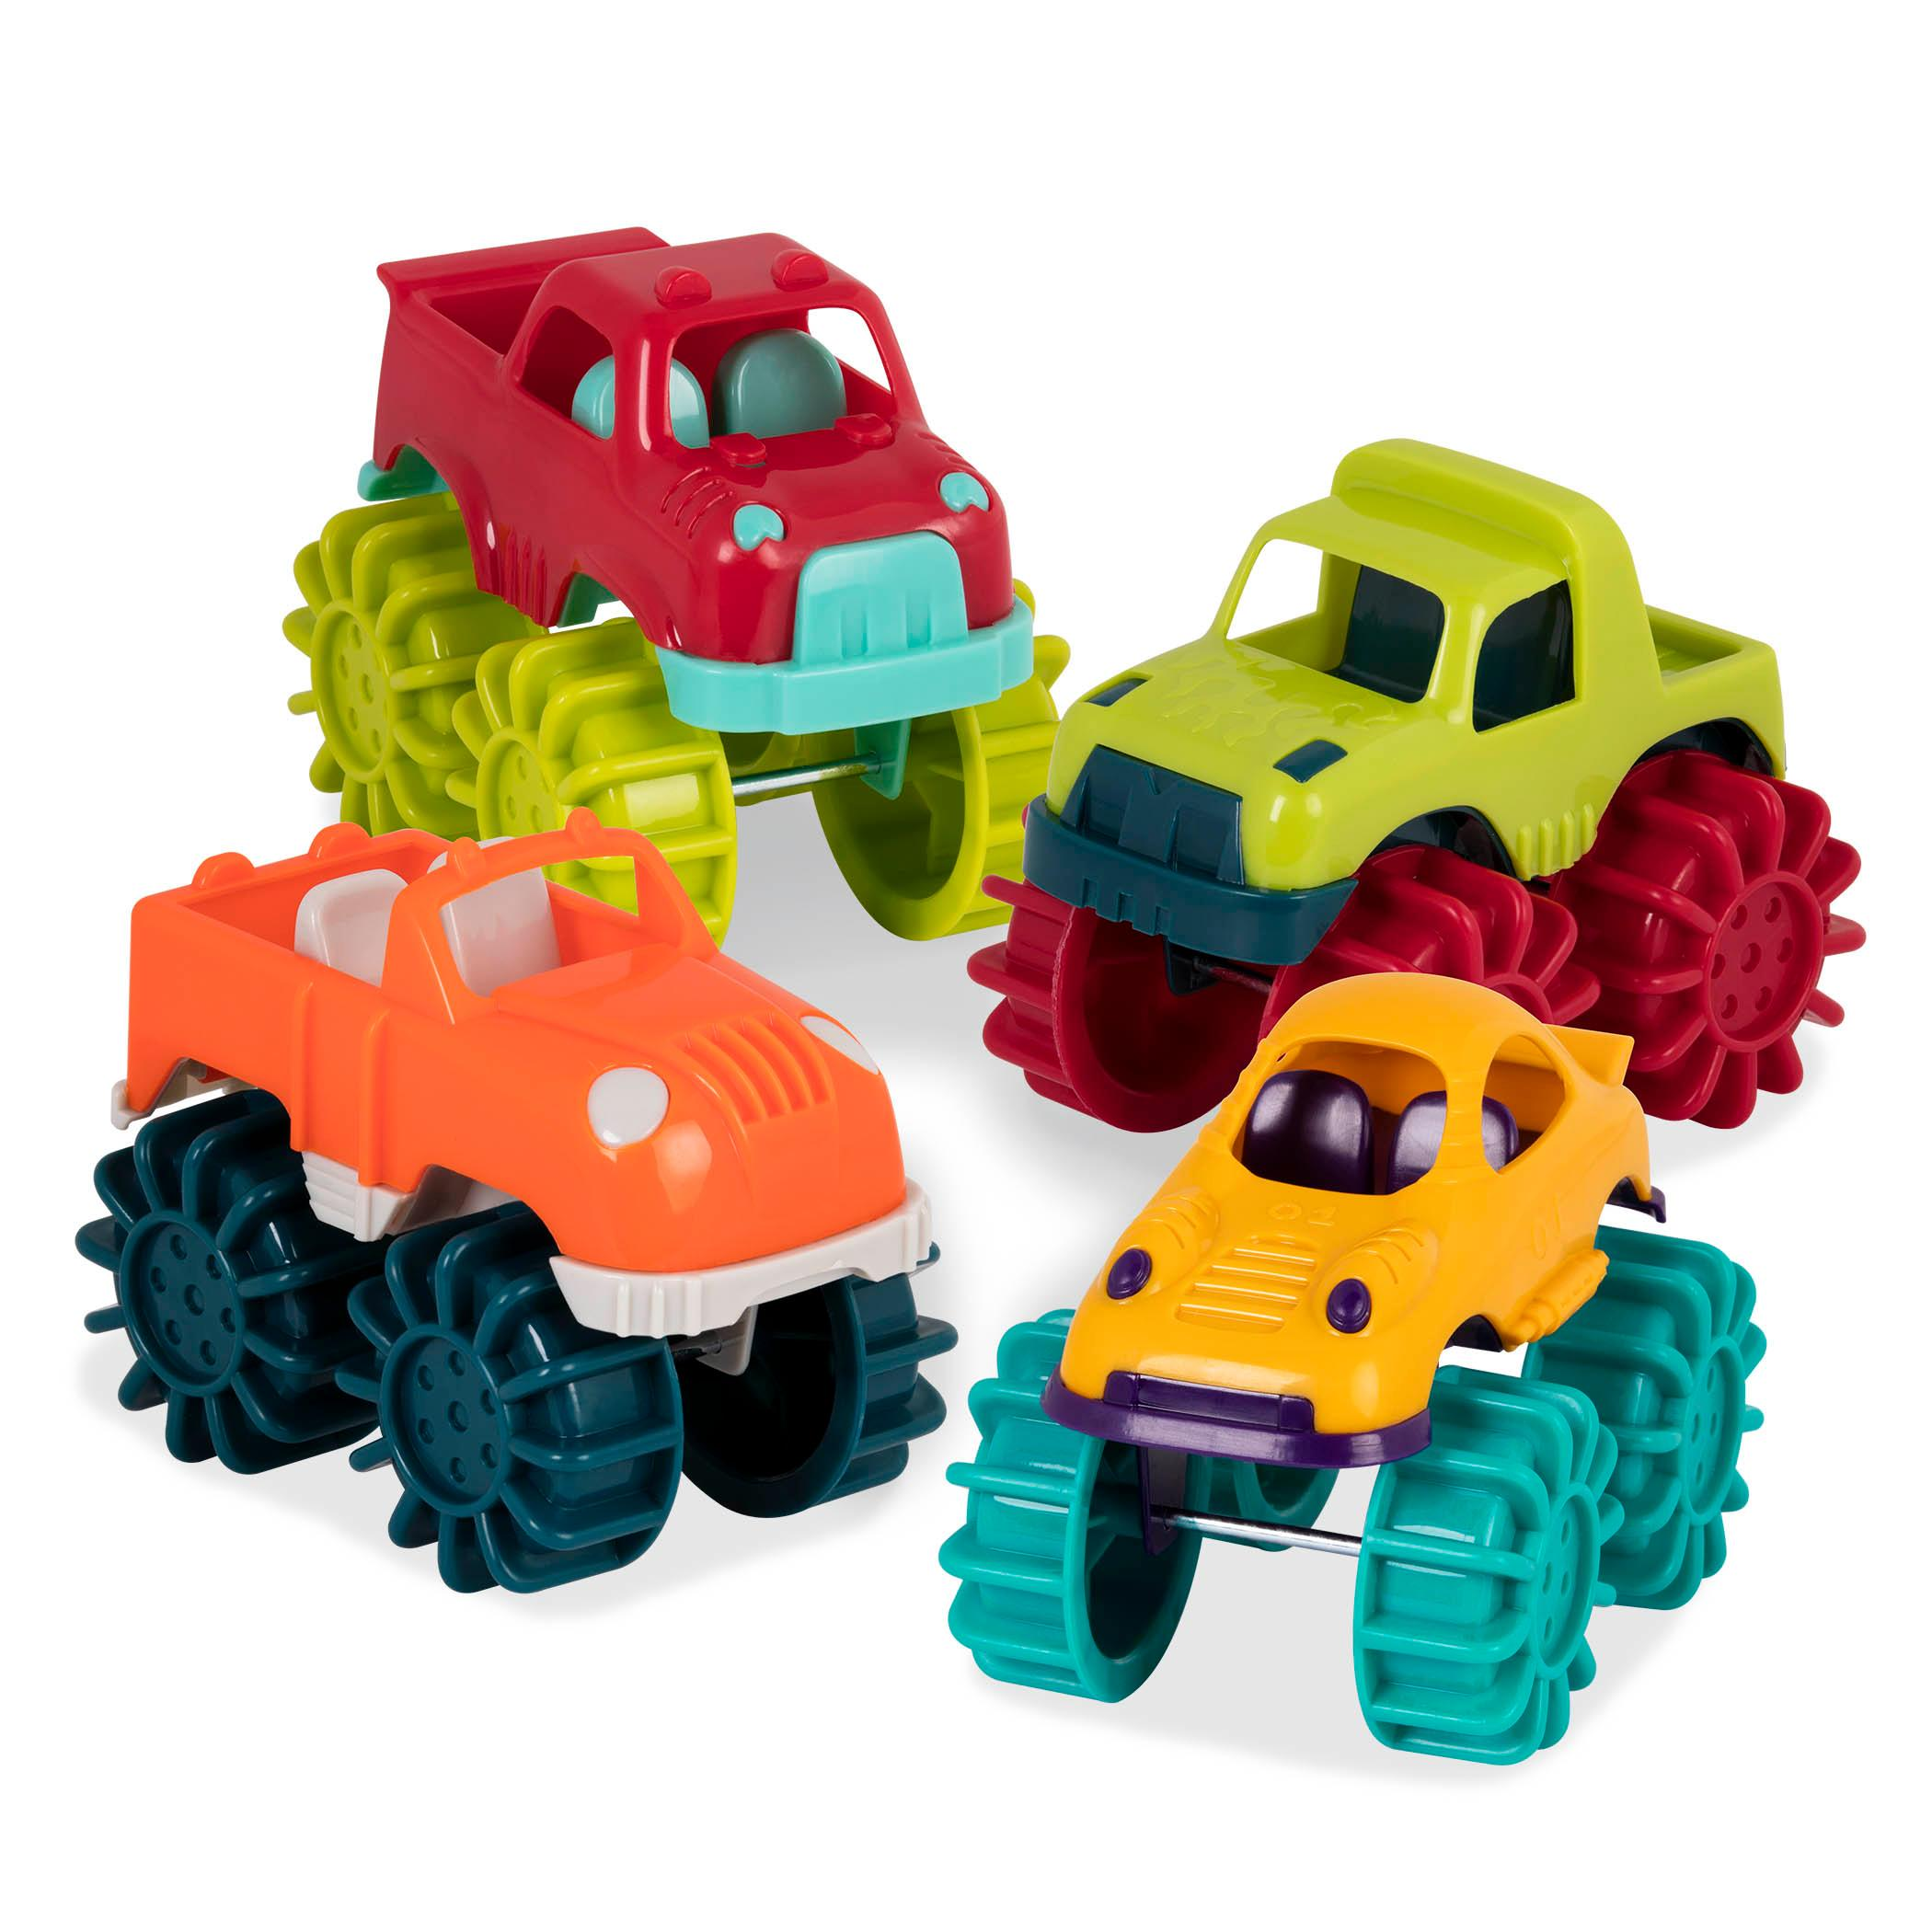 battat mini monster trucks set of 6 mini trucks for toddlers in storage bag for 2. Black Bedroom Furniture Sets. Home Design Ideas